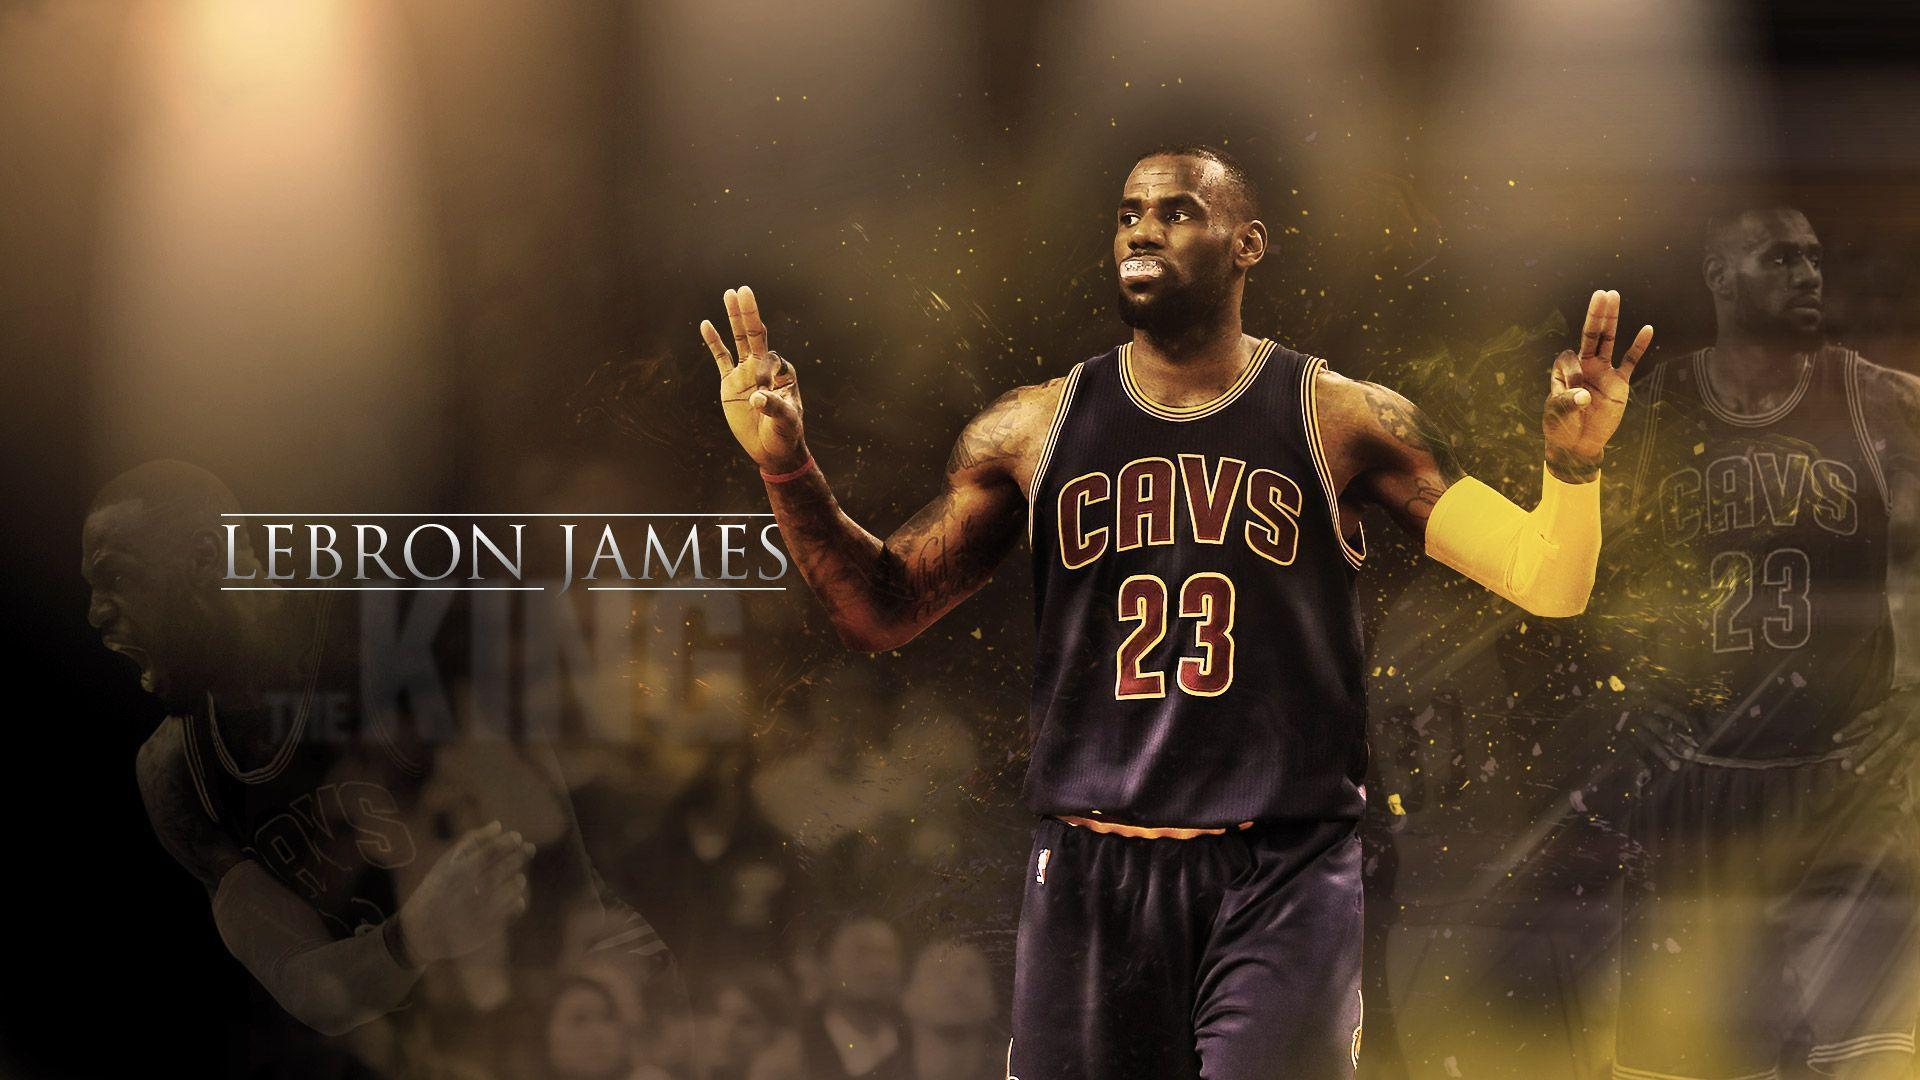 LeBron James 2017 Wallpapers - Wallpaper Cave